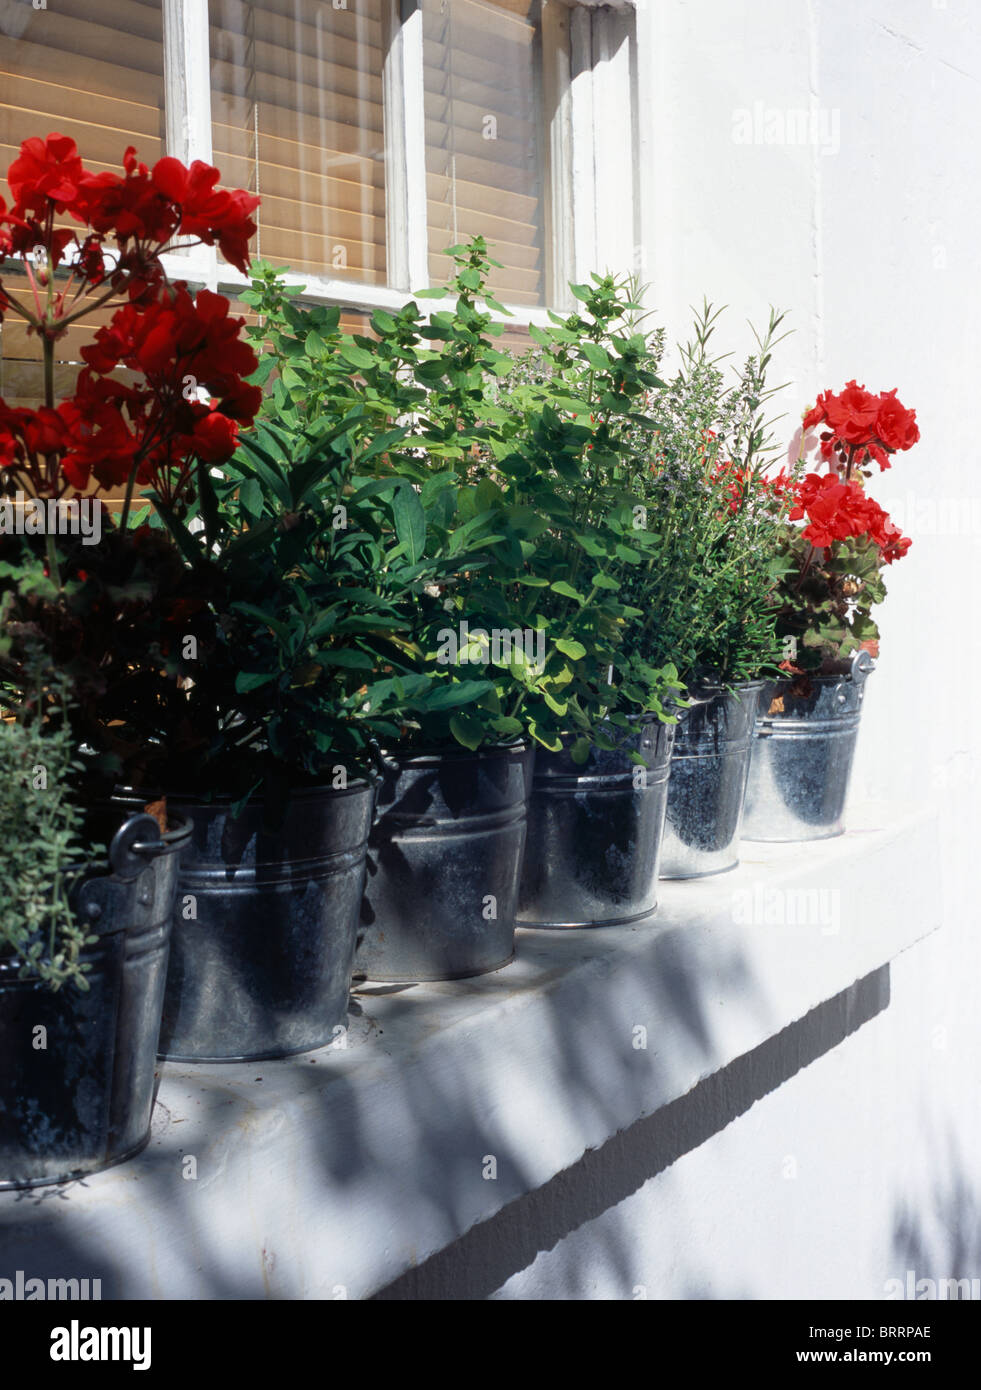 Close-up of herbs and red geraniums growing in metal pots on windowsill - Stock Image